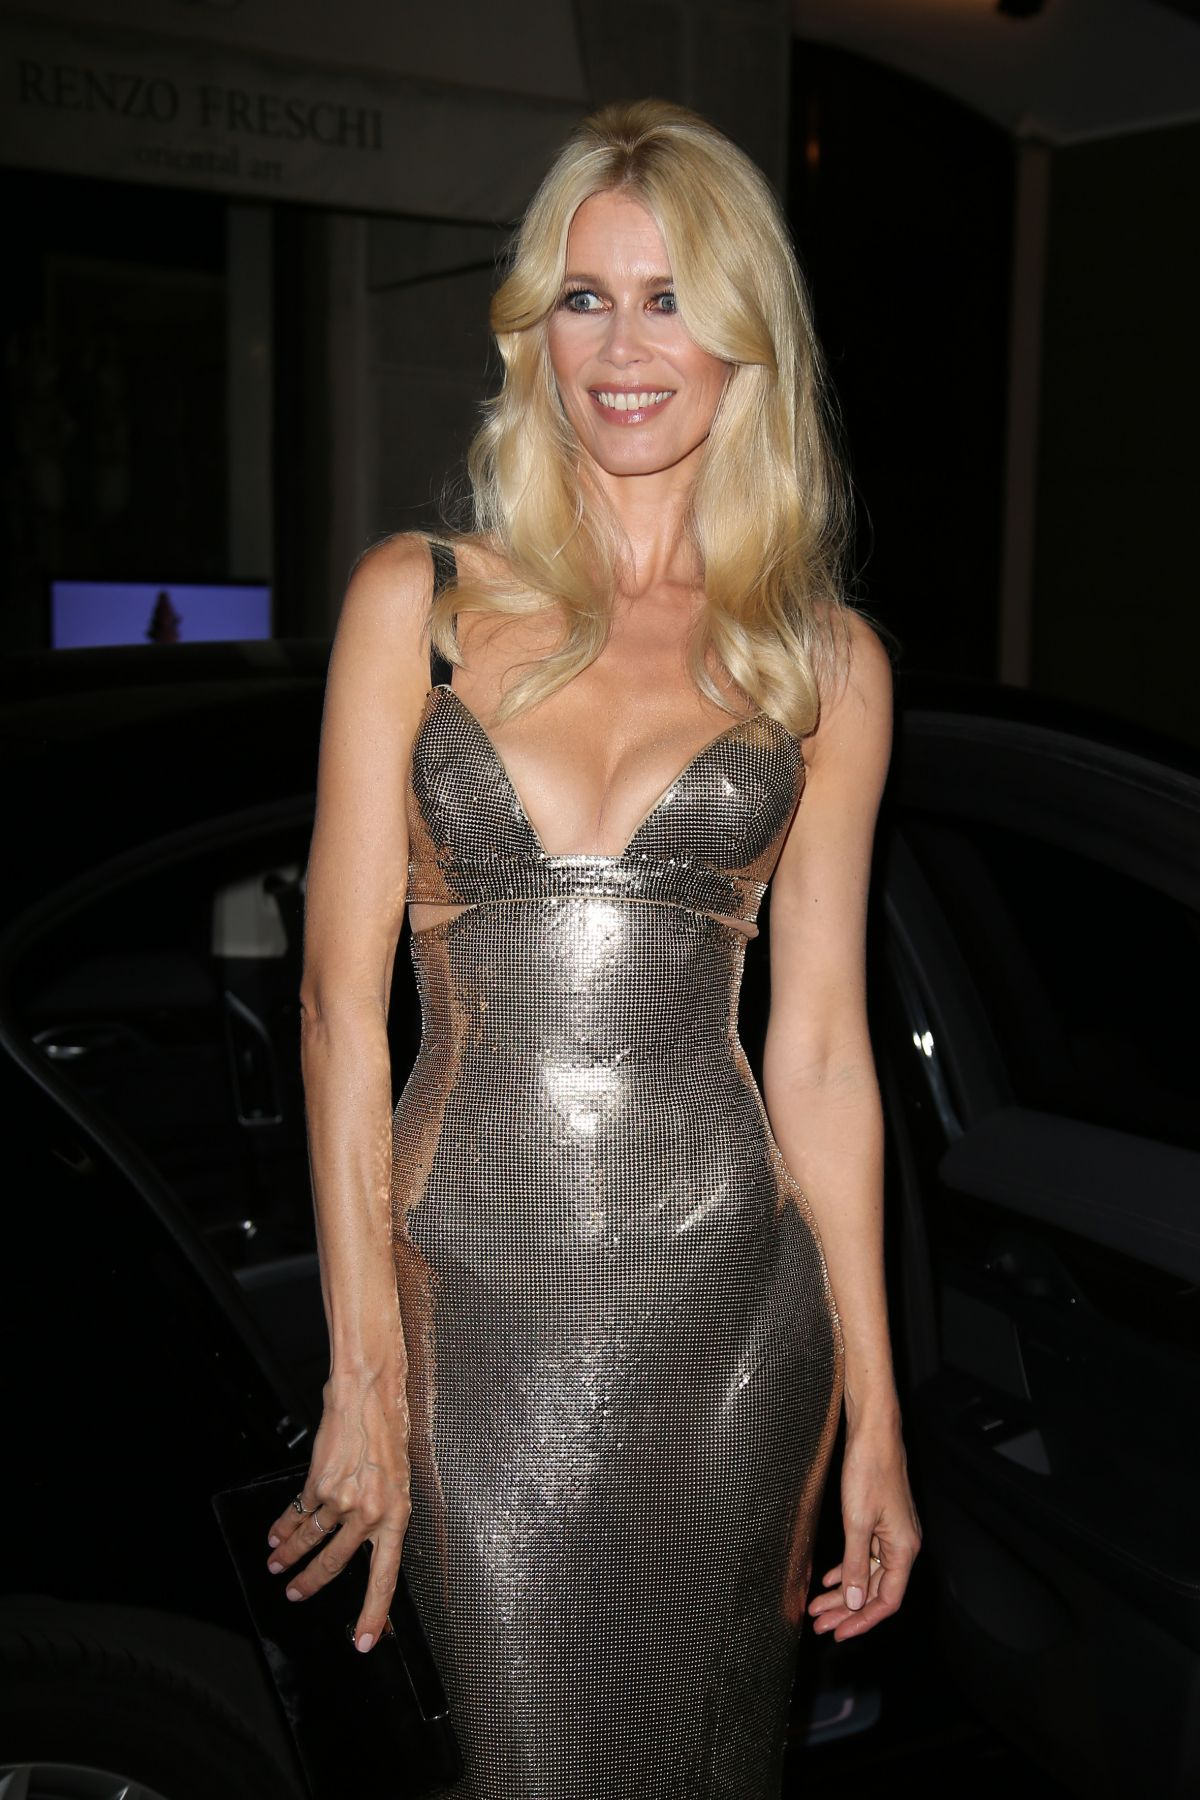 4160780f301 VERSACE Spring Summer 2018 Tribute Collection backstage with CLAUDIA  SCHIFFER In chain mail gown